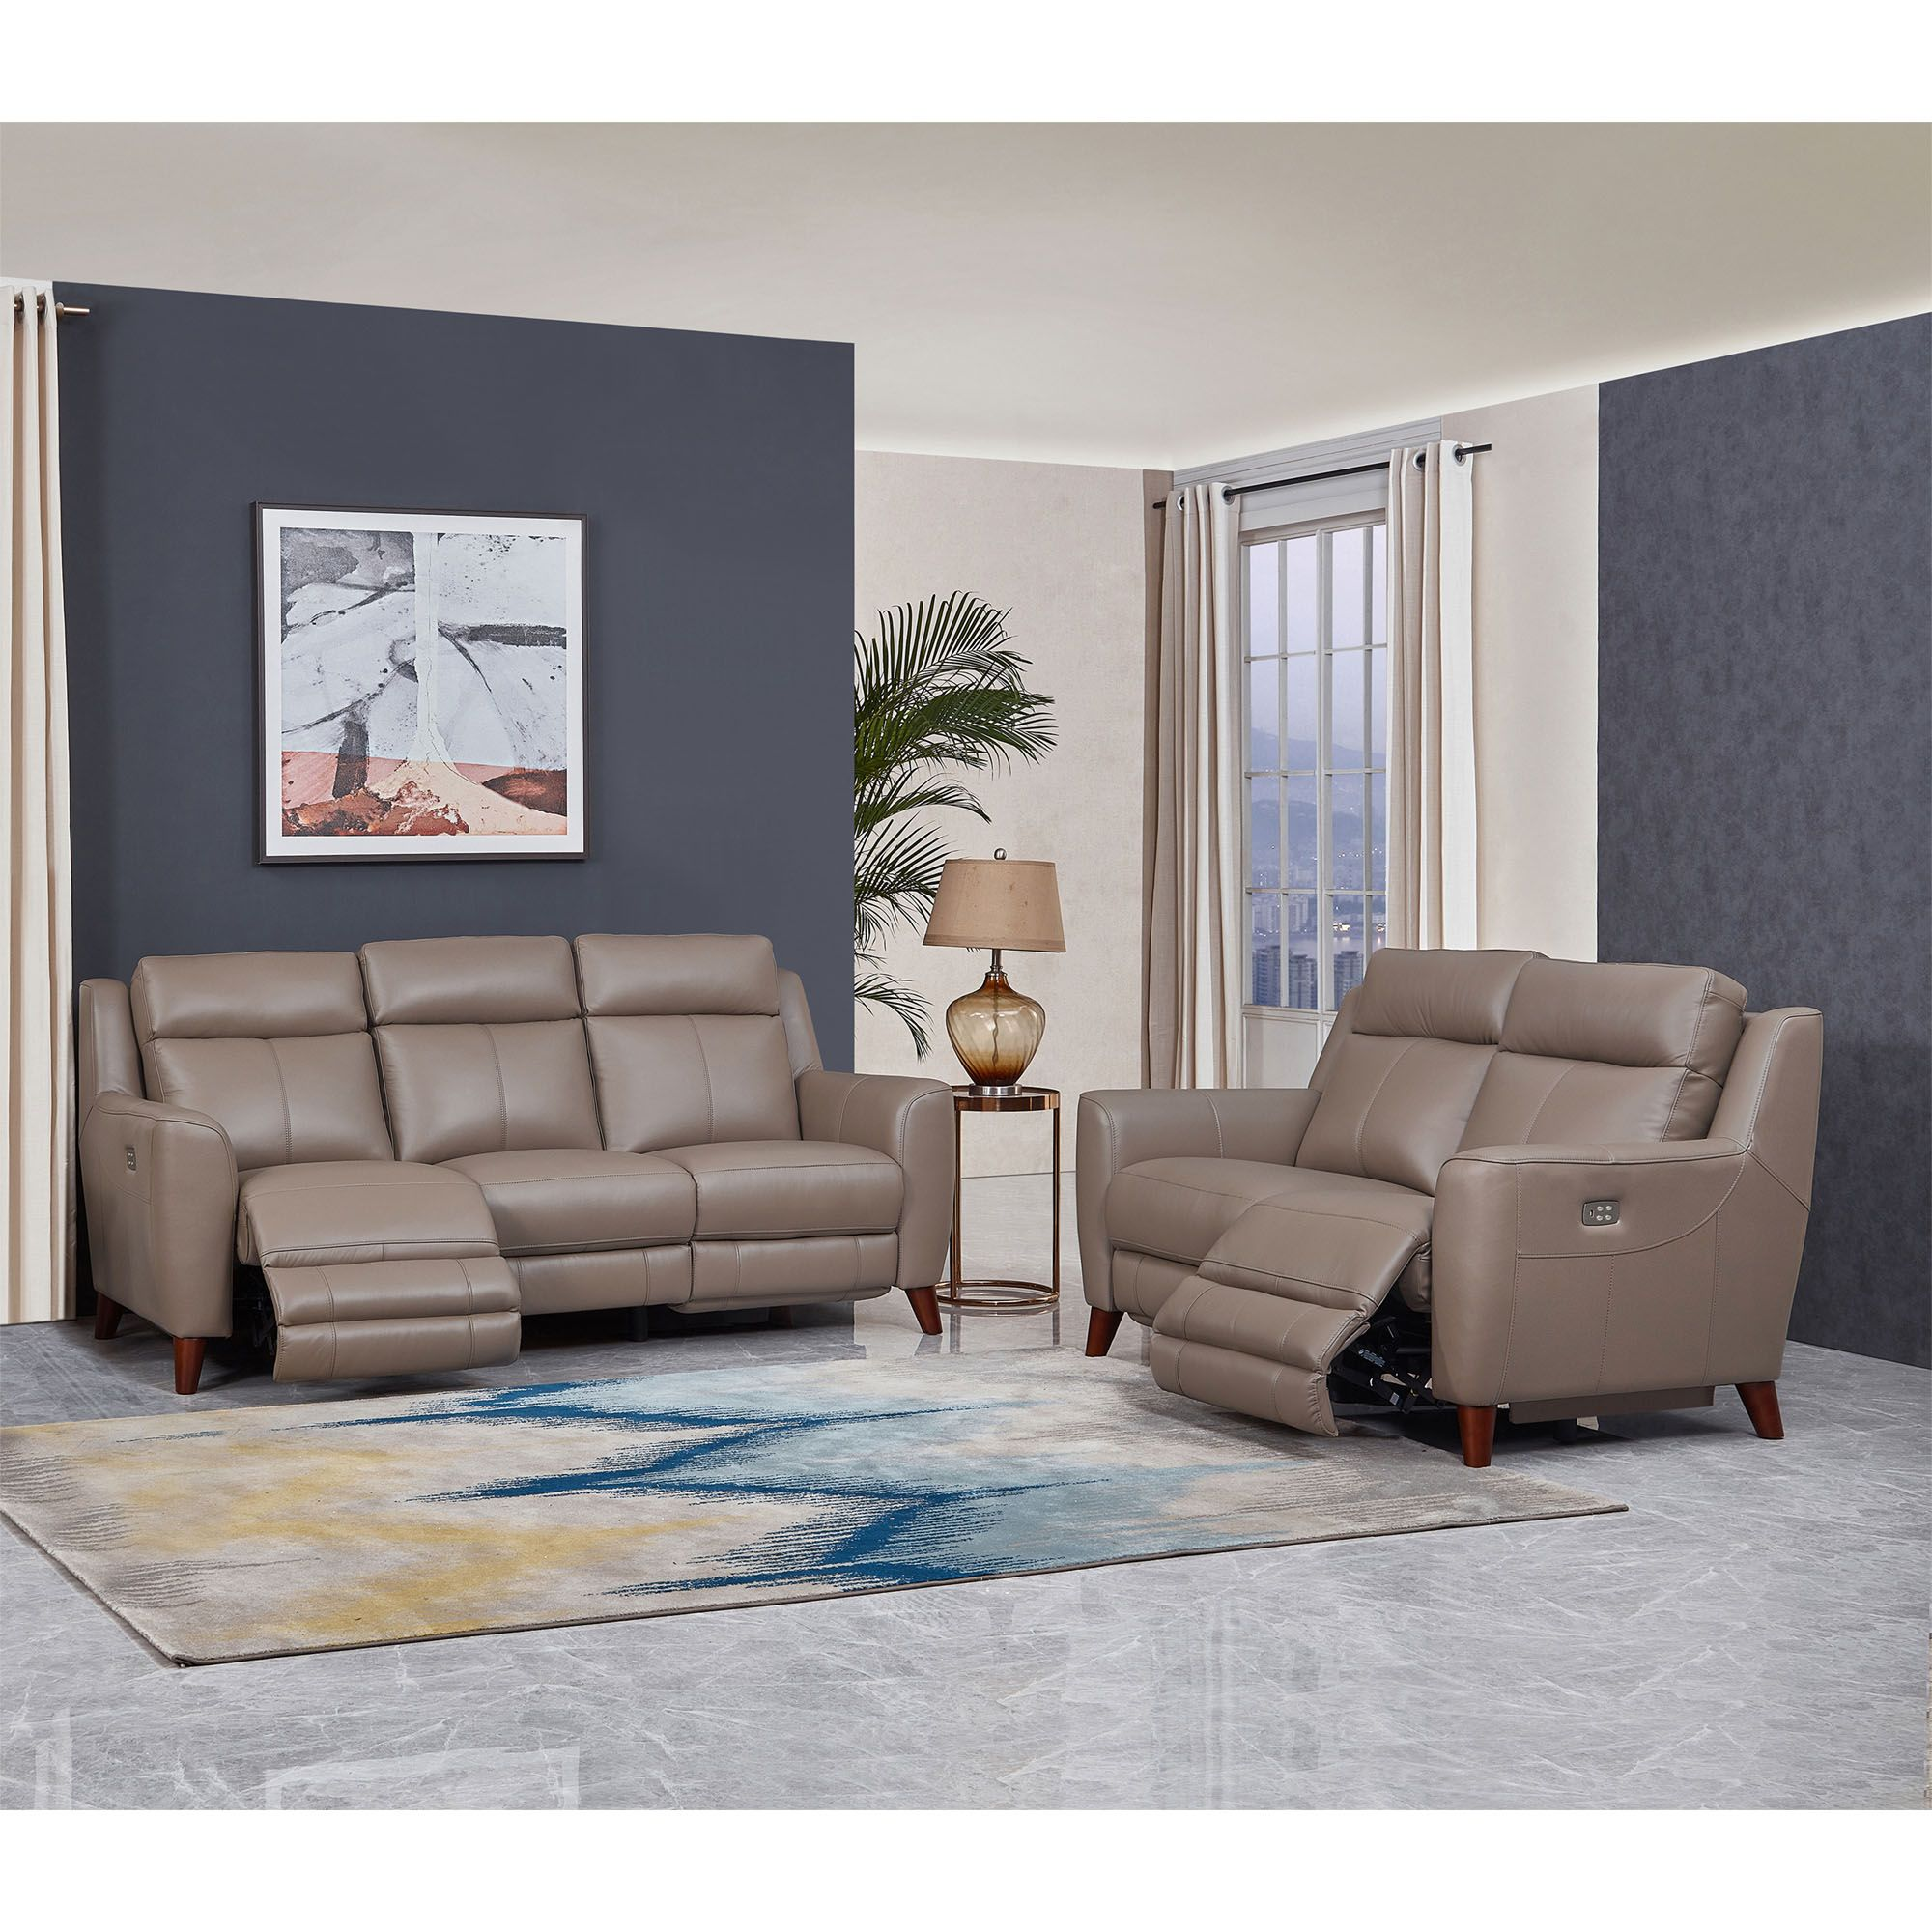 Bj S Wholesale Clubhydeline Furniture Crescent Bay Collection 2 Pc Leather Sofa And Love Dailymail